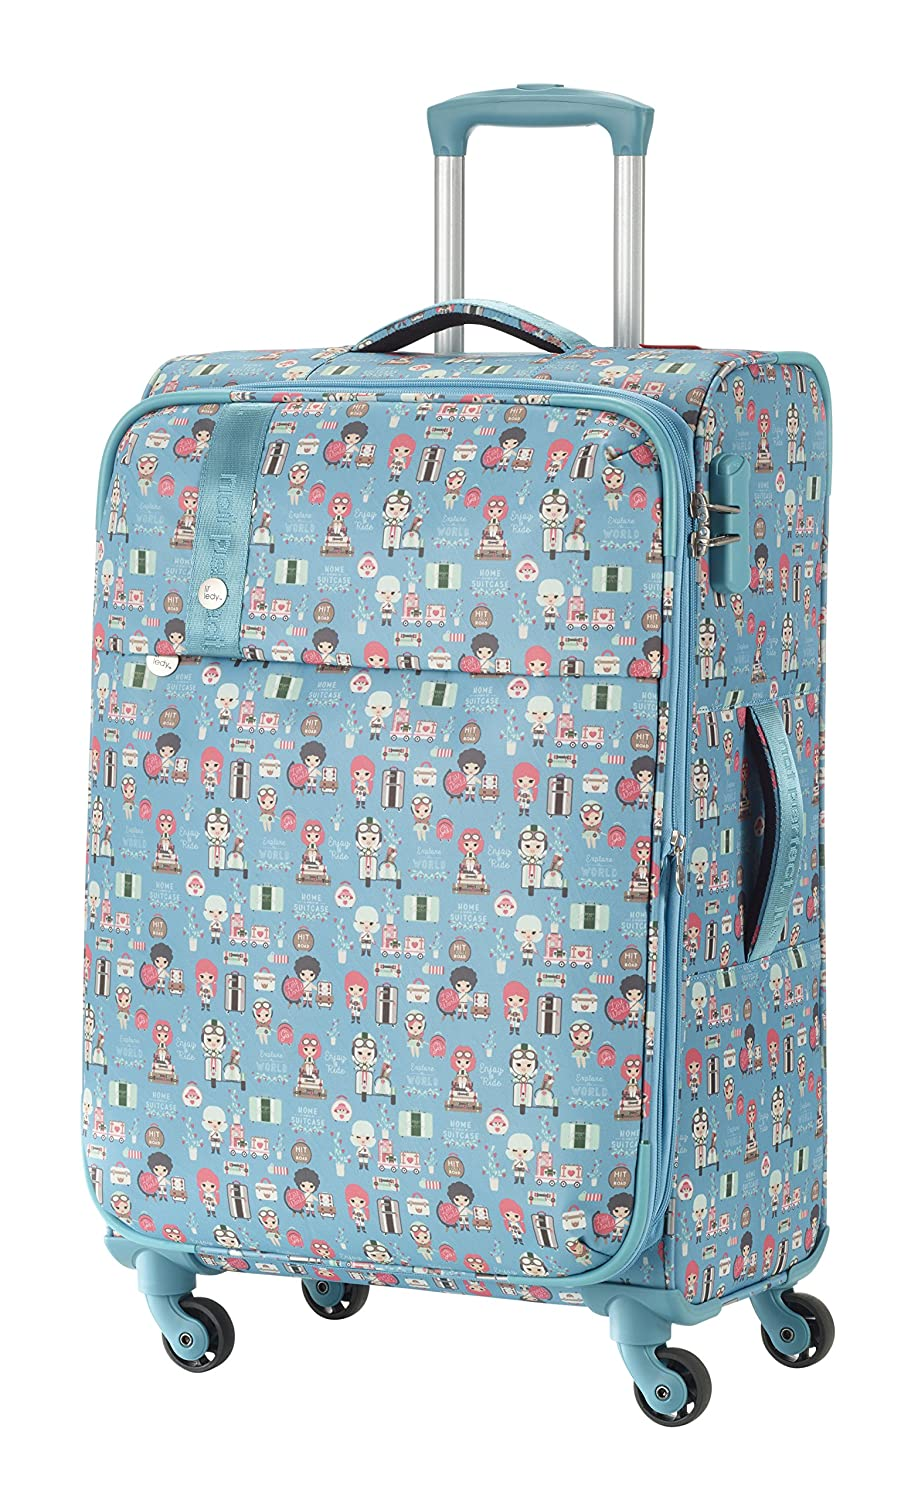 c017862f5e Travelite Lil'Ledy Bagage Cabine, 66 cm, 70 liters, Turquoise (Türkis):  Amazon.fr: Bagages